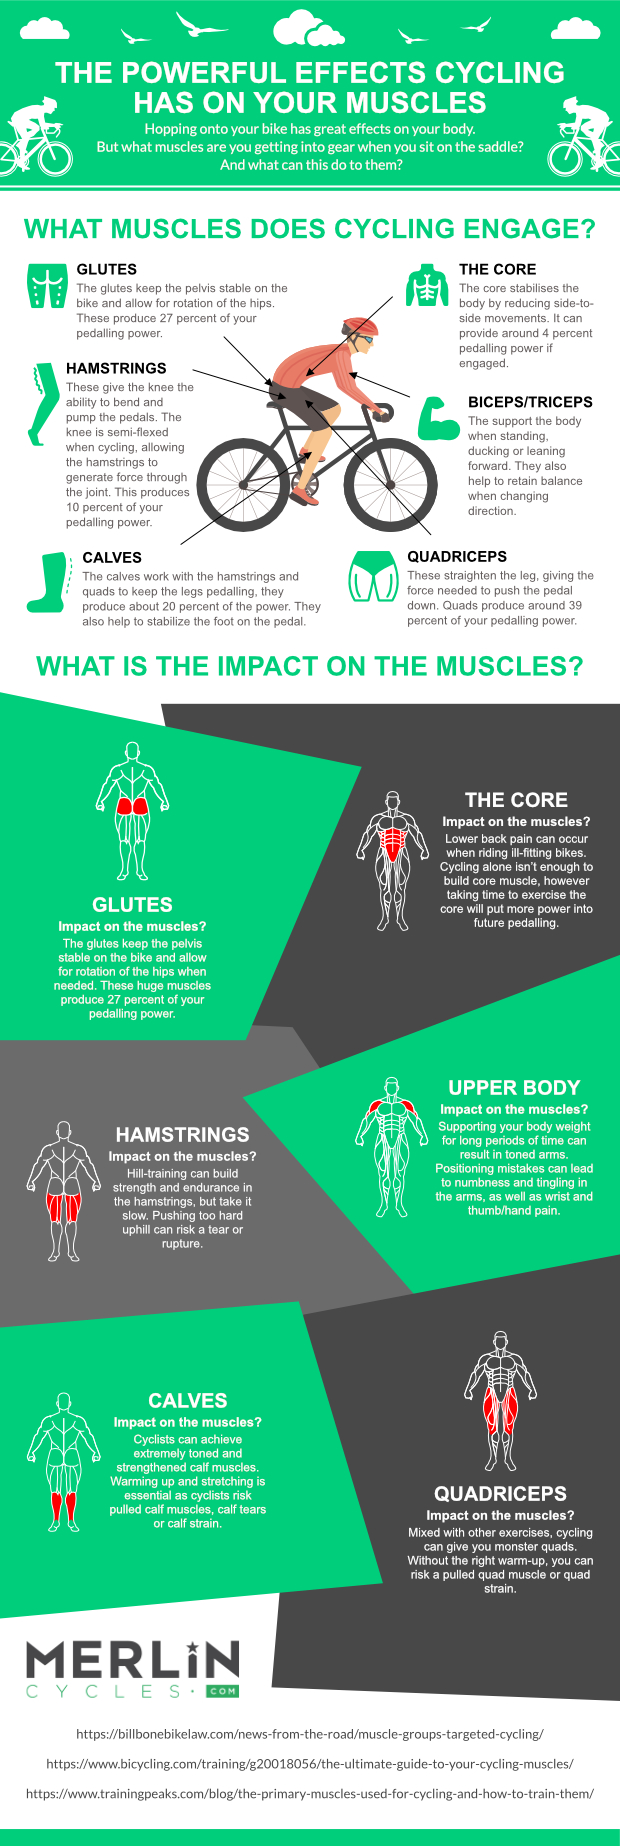 Infographic showing cycling's impact on the muscles